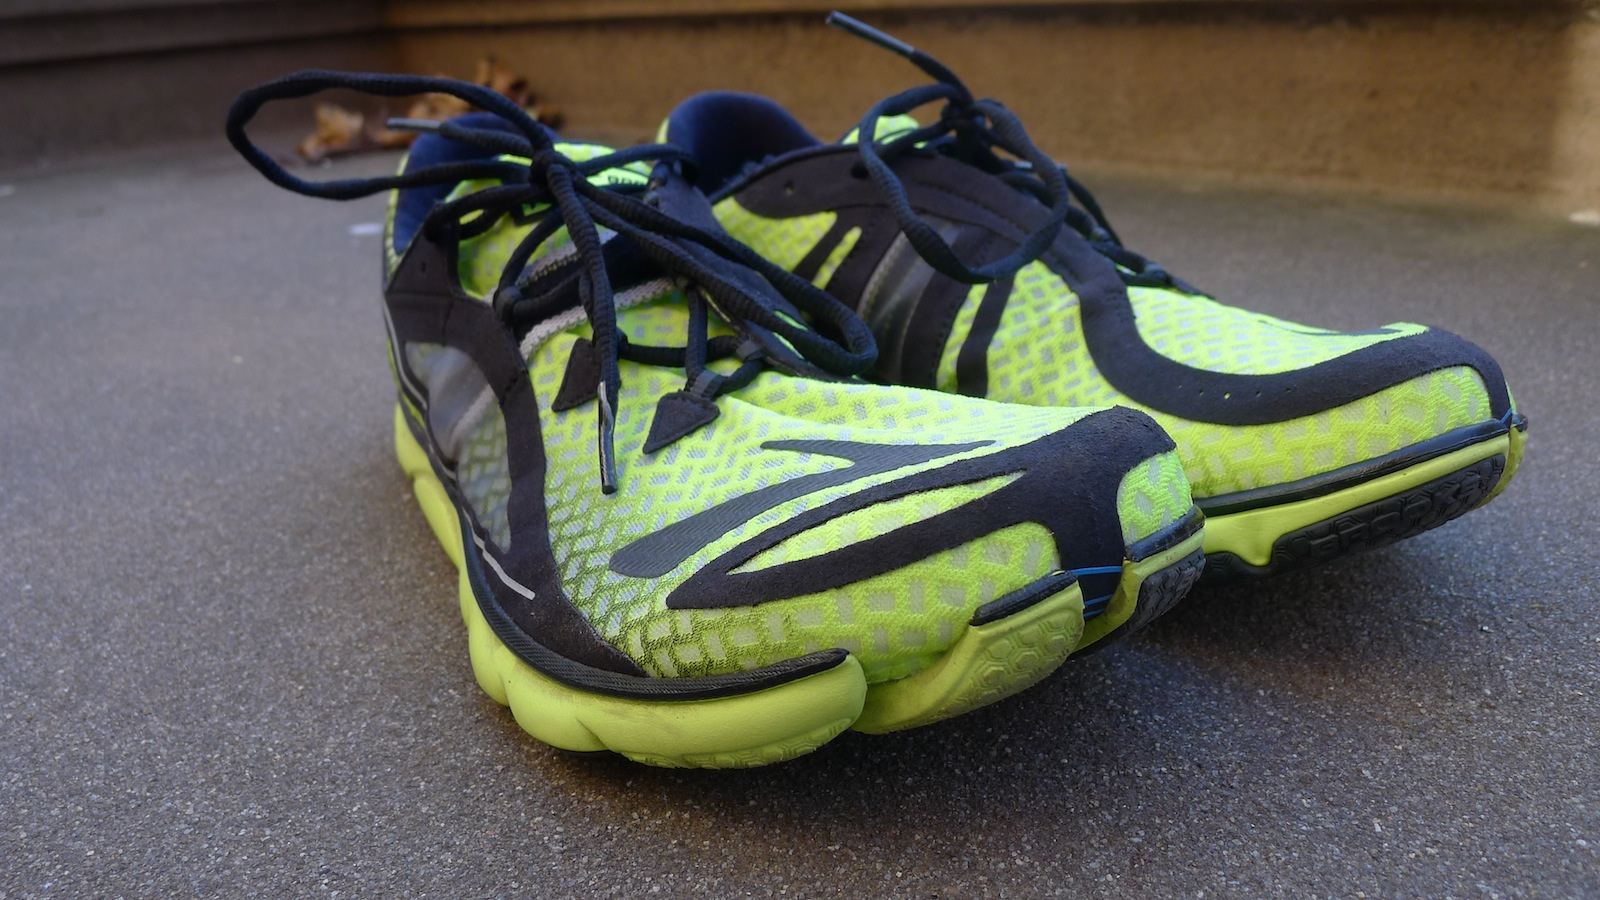 Cushion Running Shoes.com   Best Motion Control Running Shoes